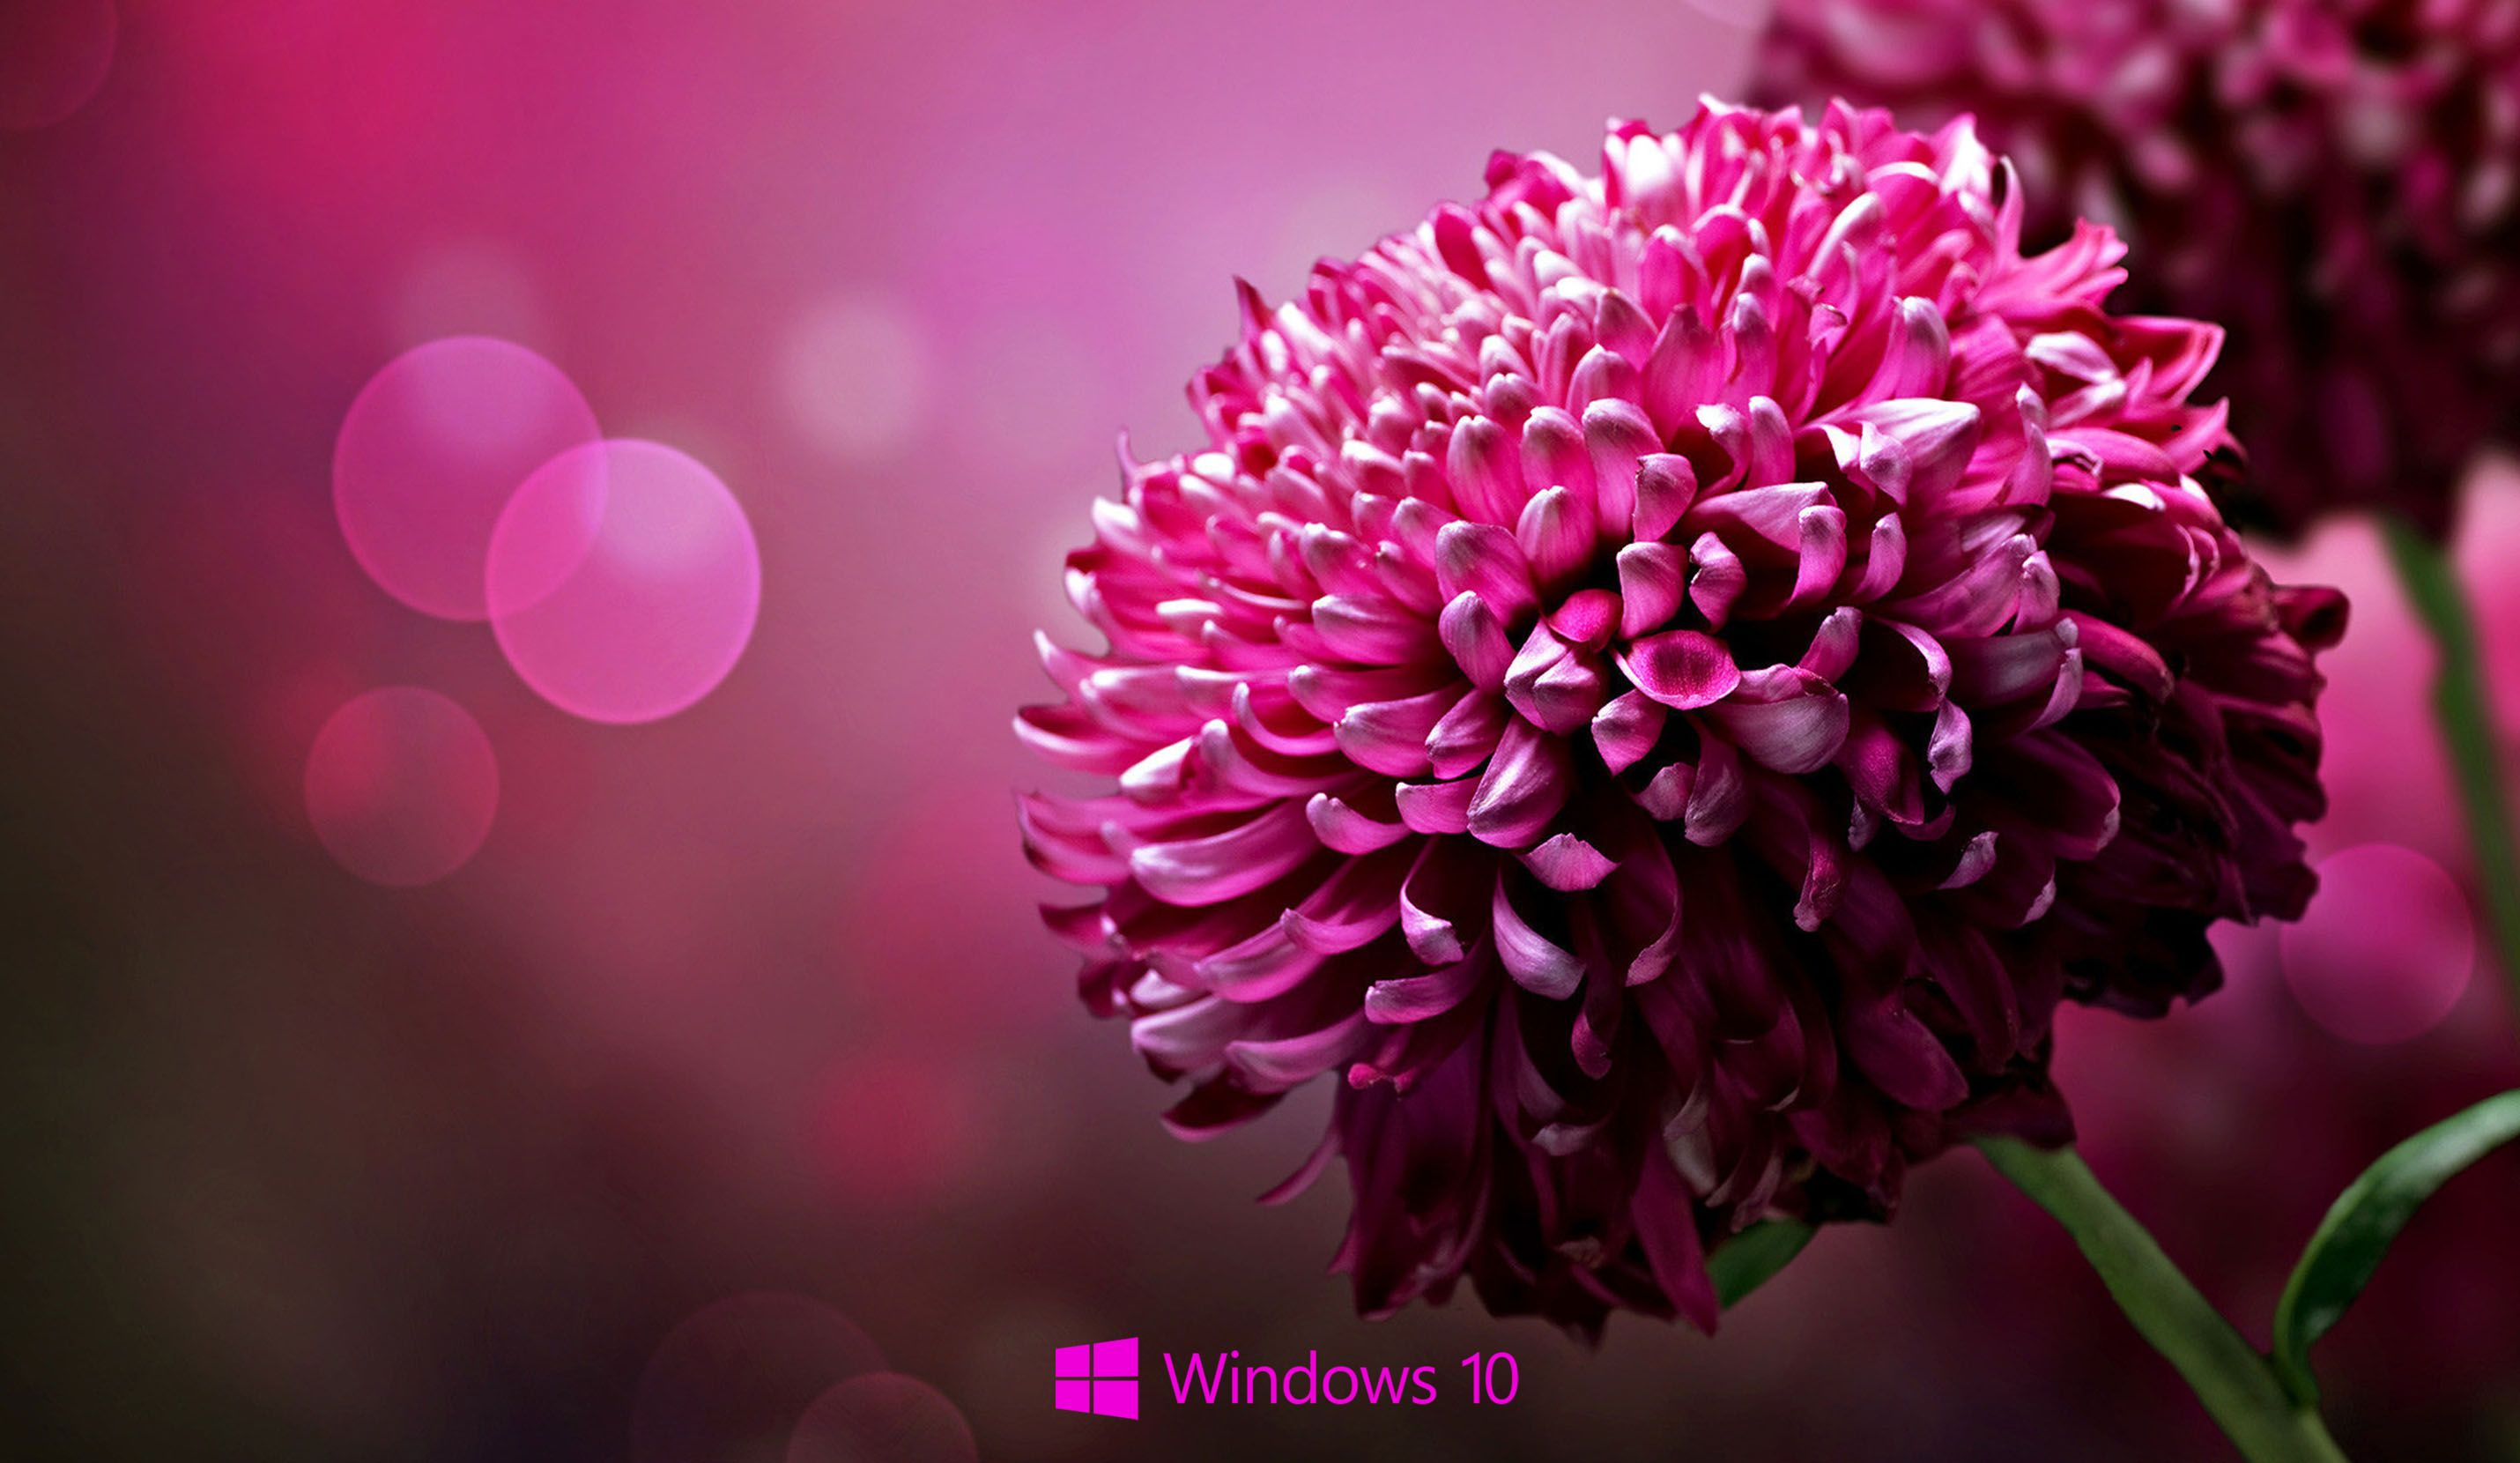 Wallpaper Of Laptop Hd For Windows Flower Pics Smartphone ...